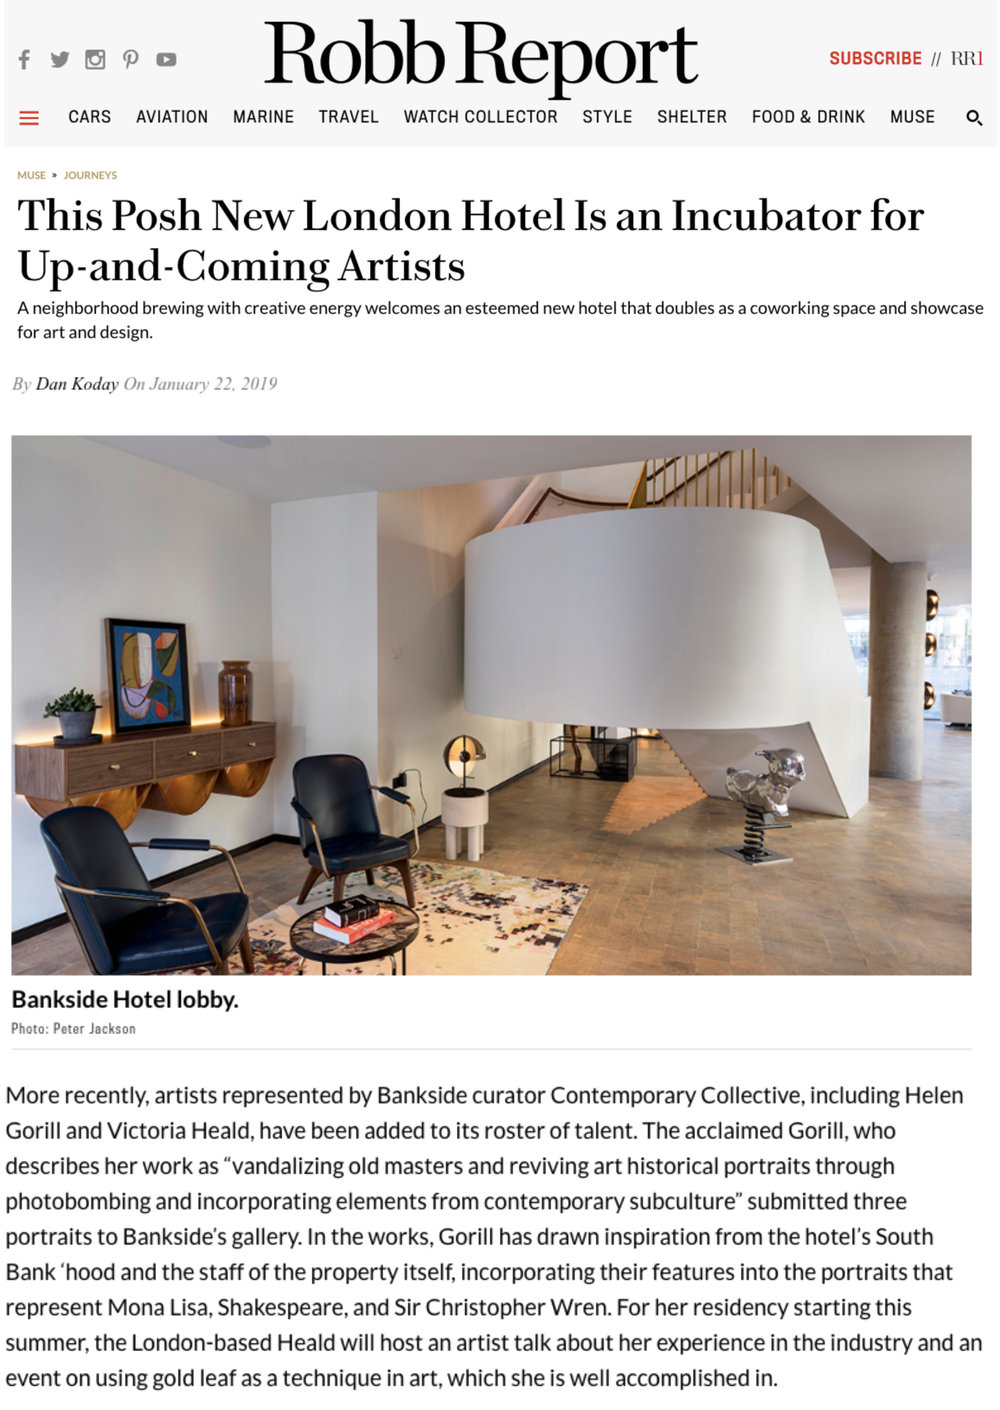 Press_Banksidehotel_Jan2019.jpg